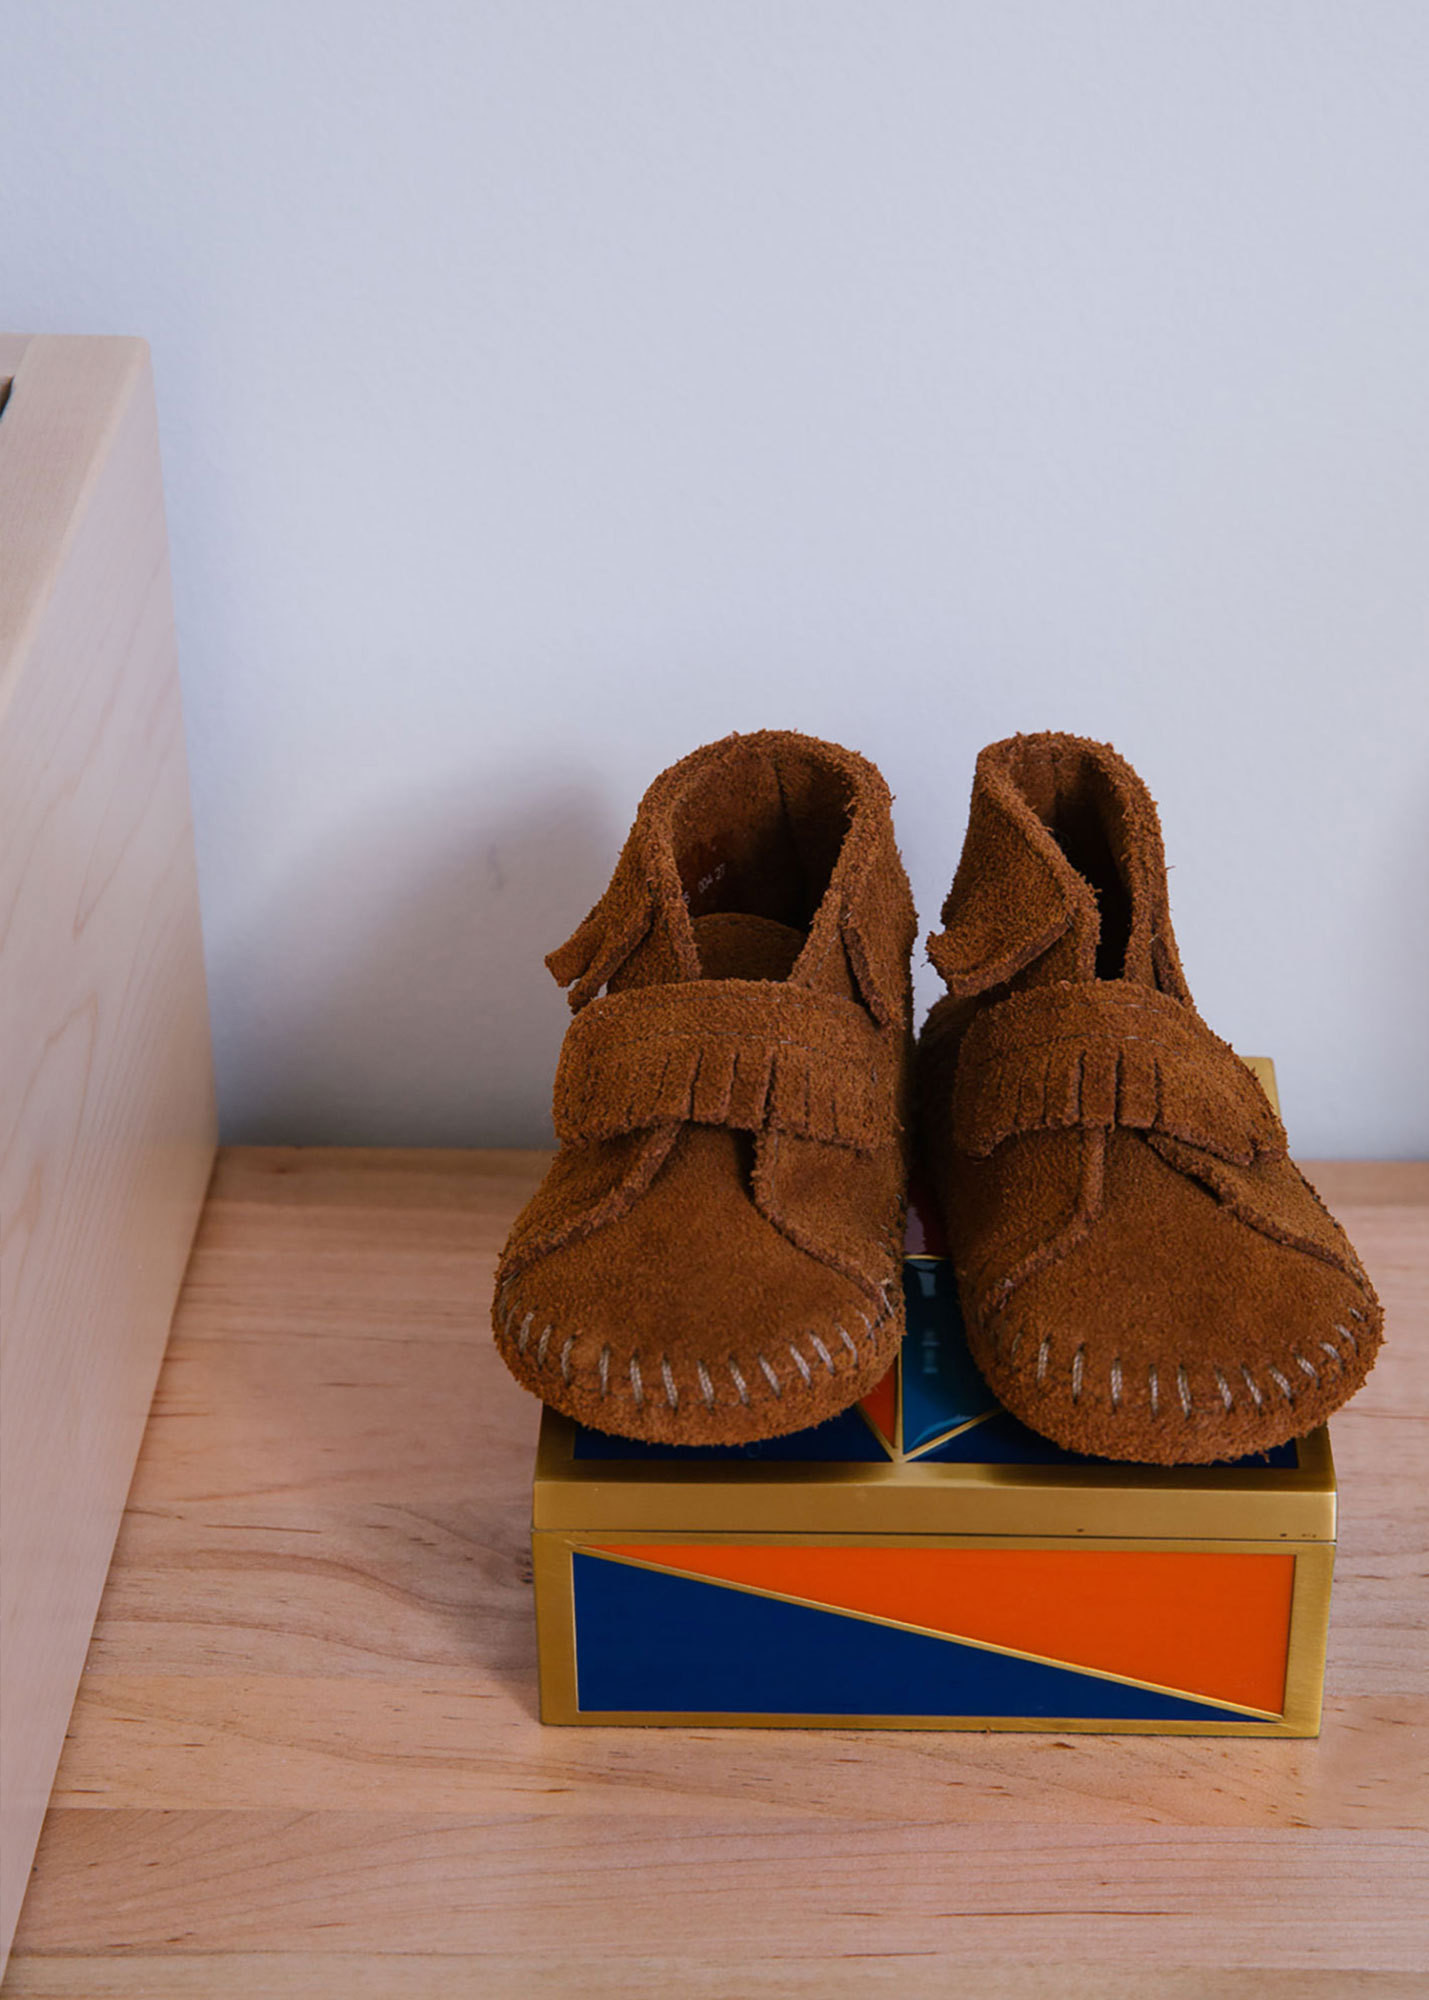 Suede booties await pint-size feet.